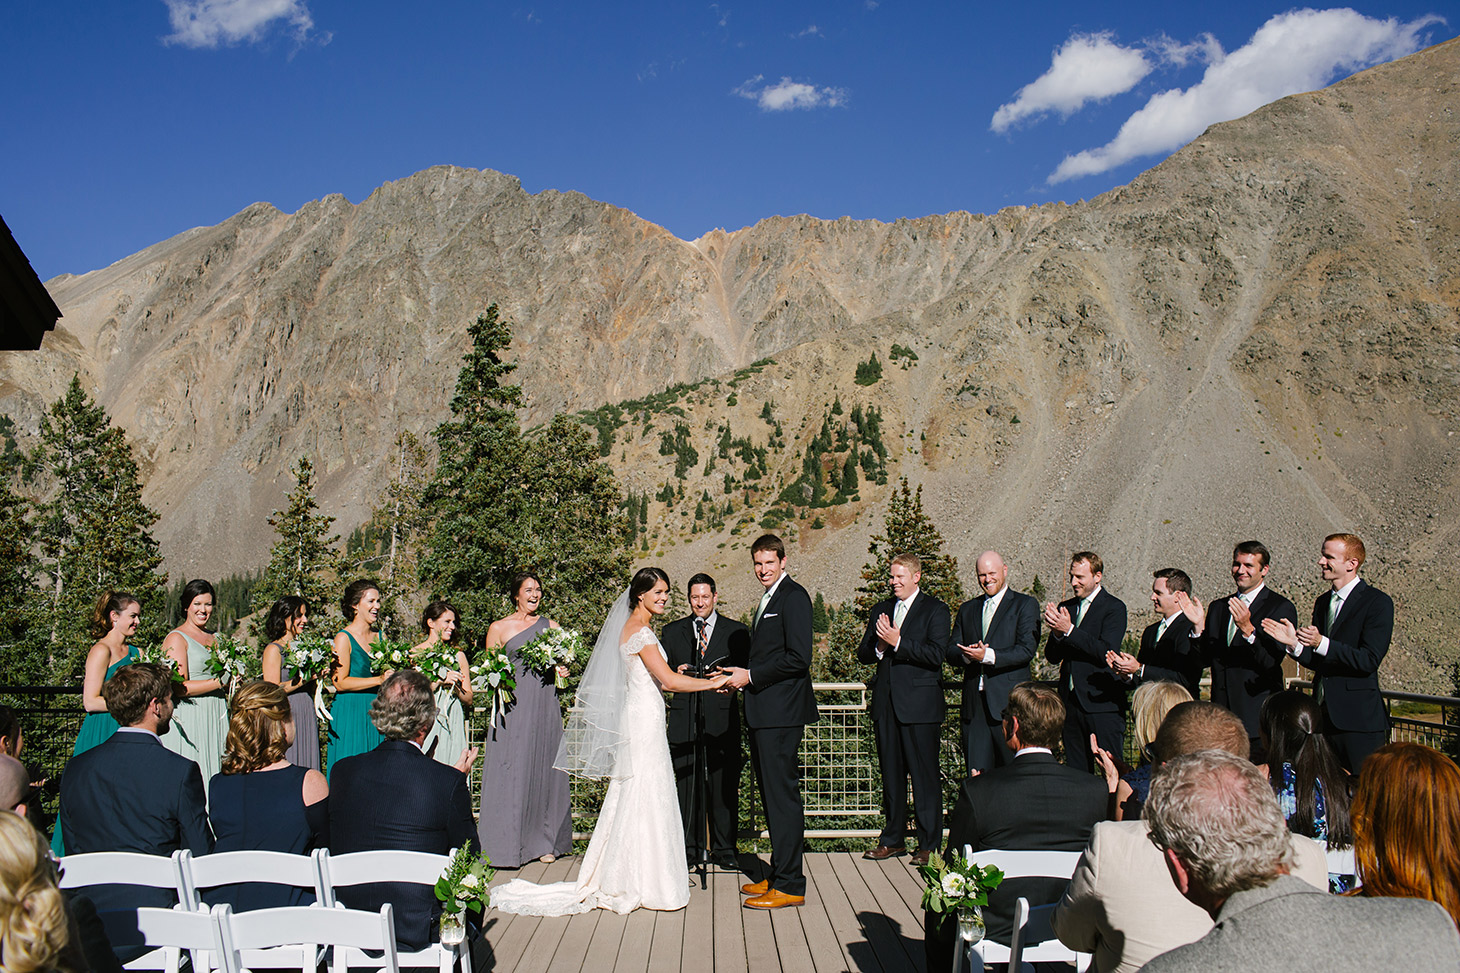 Megan-Newton-Photography-Best-Wedding-Photos-2015-270